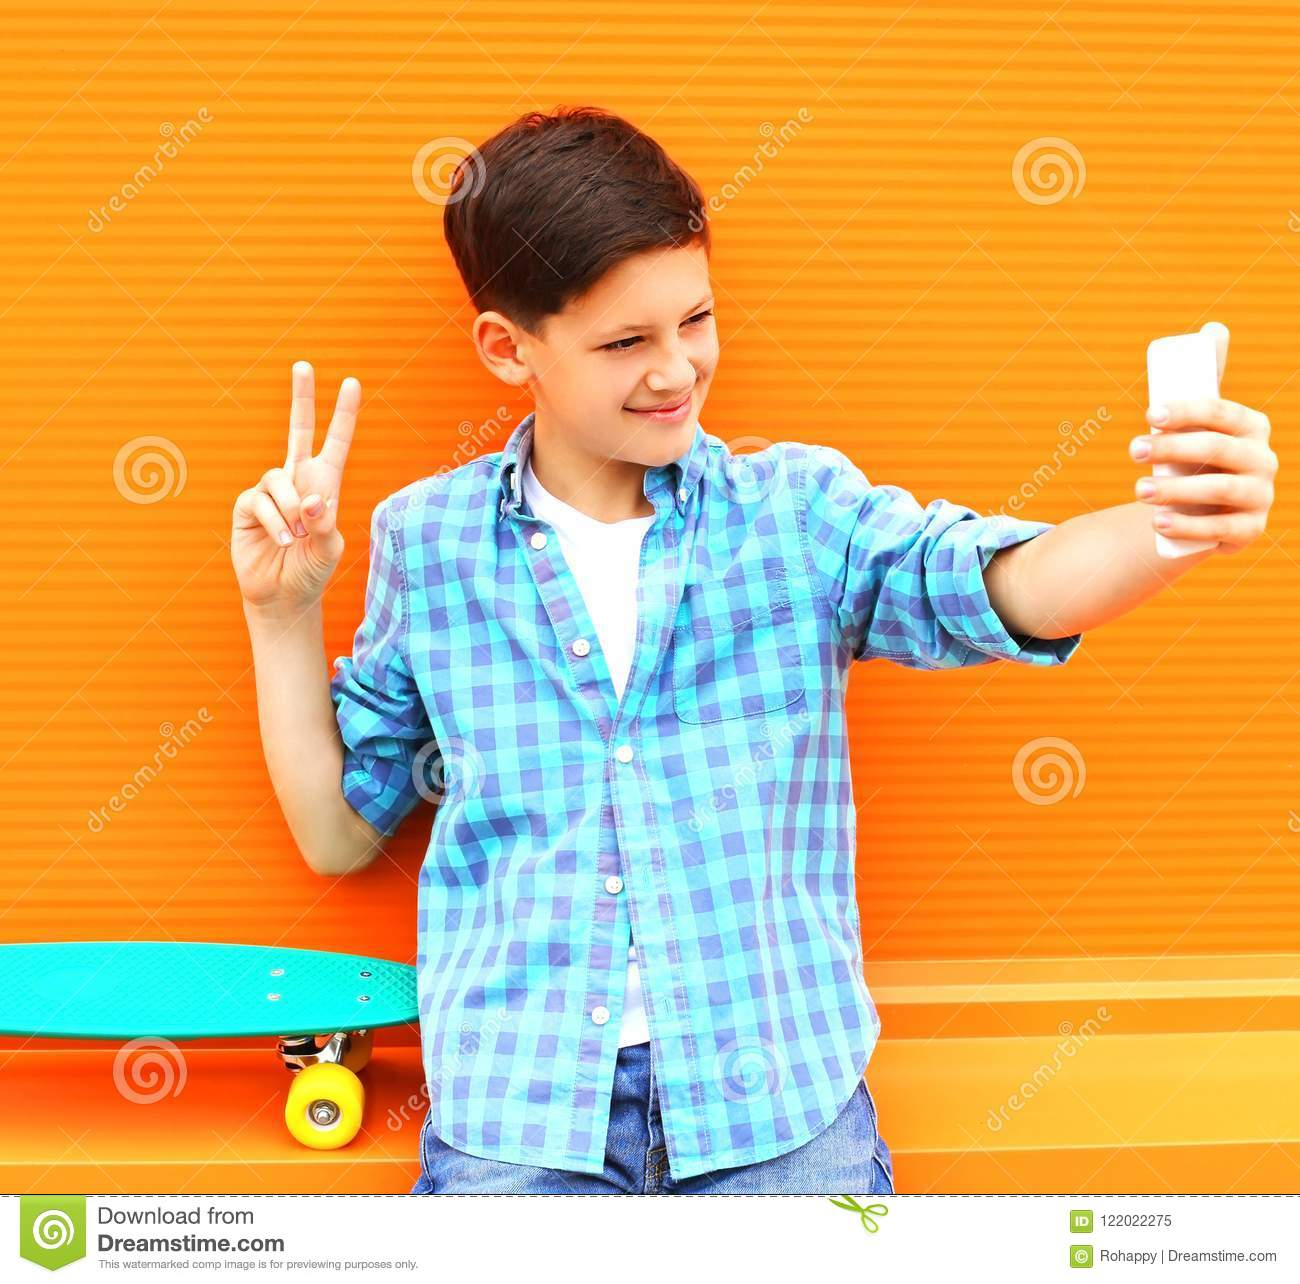 Fashion cool teenager boy is taking picture self portrait